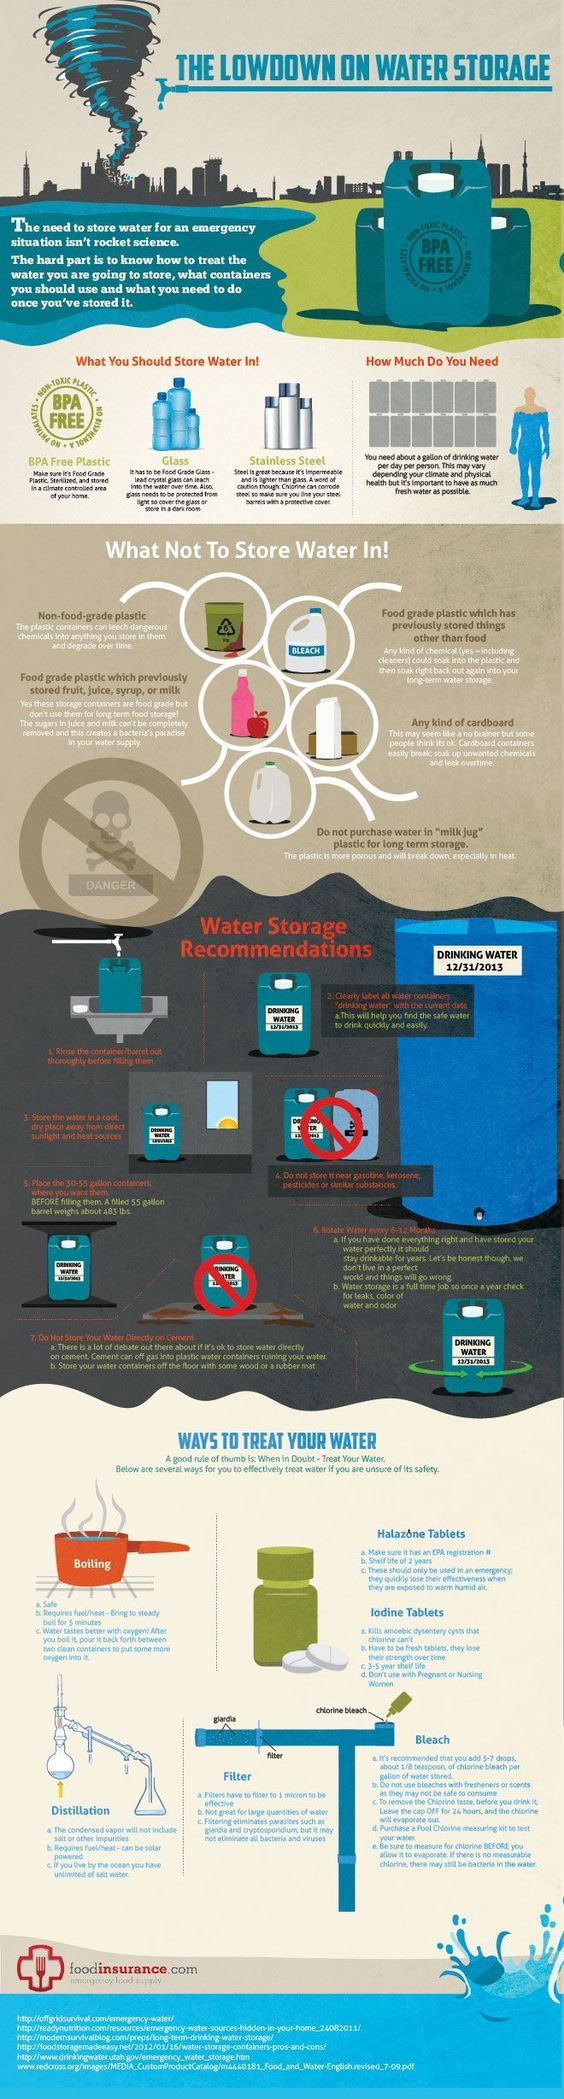 Water is vital in an emergency situation, and knowing how to store it is key to staying hydrated. | http://prepforshtf.com/wp-content/uploads/2013/12/Lowdown-on-Water-Storage-Infographic1.jpg